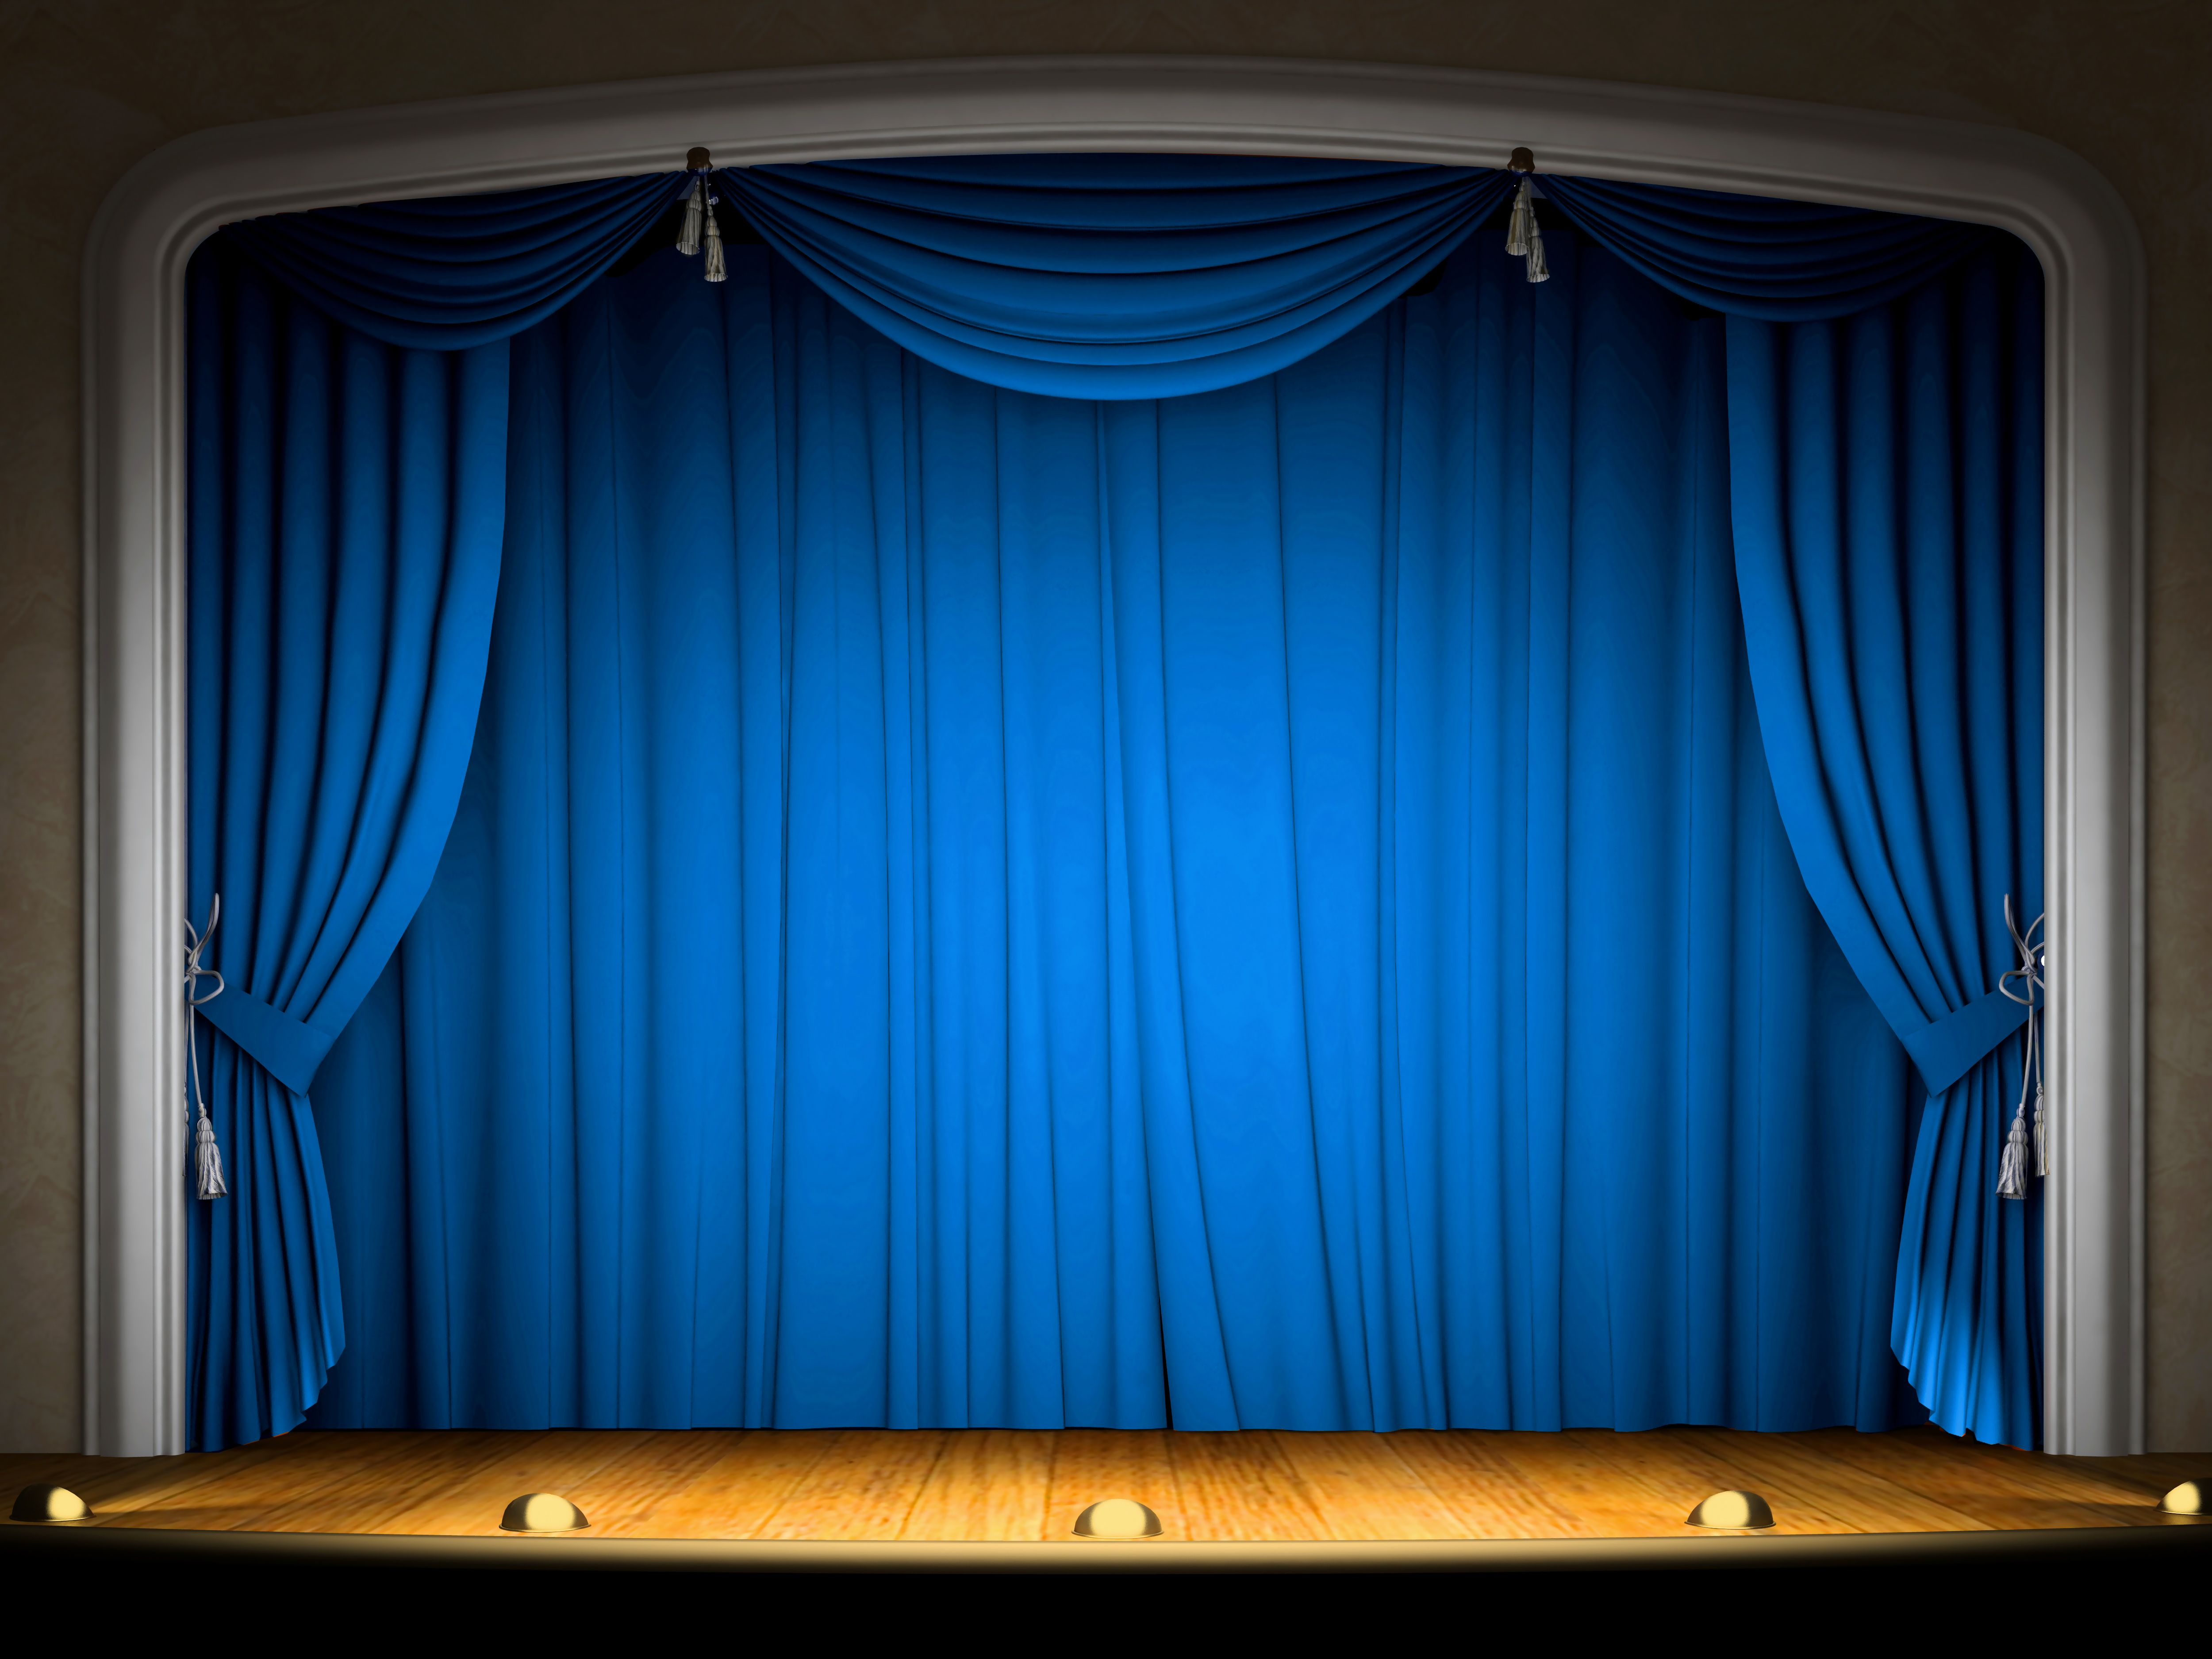 Stage curtain background open stage curtains background red stage - Theatre Curtains Cutare Google Stage Curtains